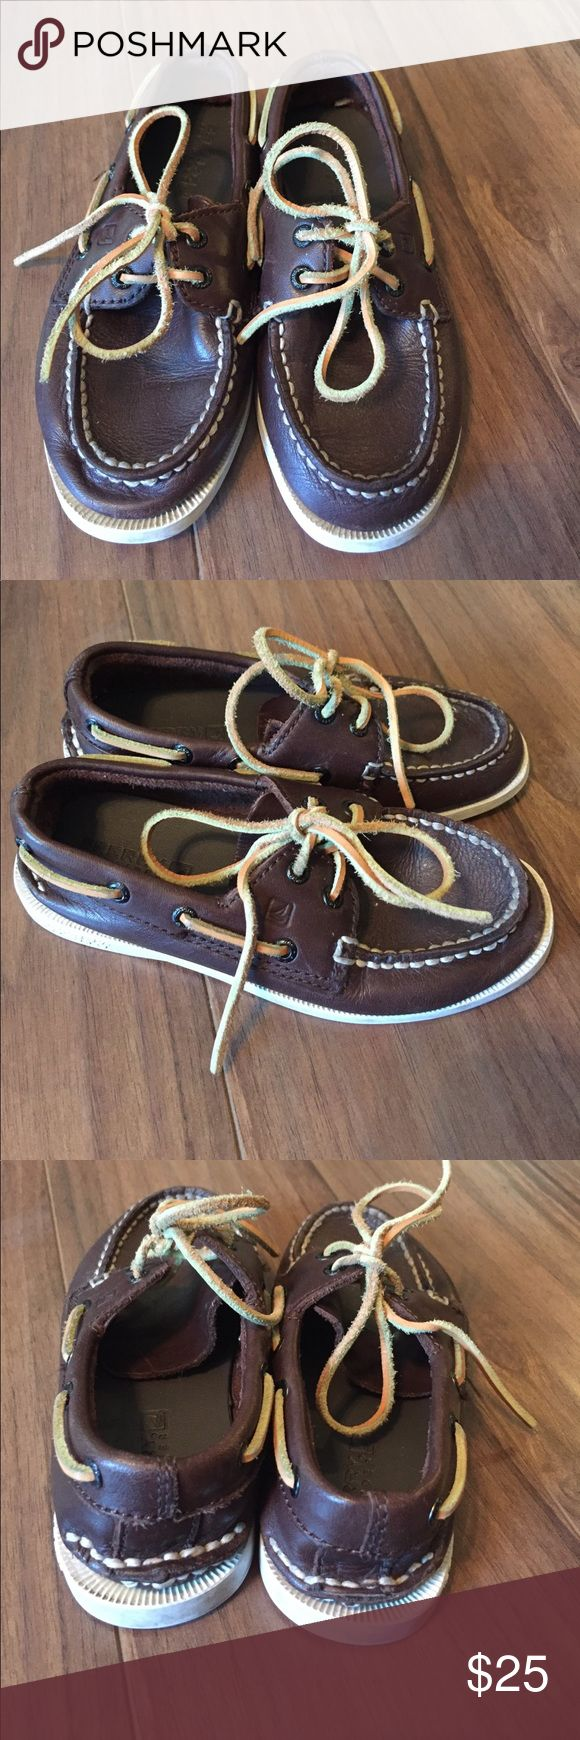 Toddler Sperrys Gently worn toddler Sperry boat shoes. Cute, classic style that goes with everything. These have been worn and do show signs of wear, but are in overall good condition with tons of life left. Sperry Shoes